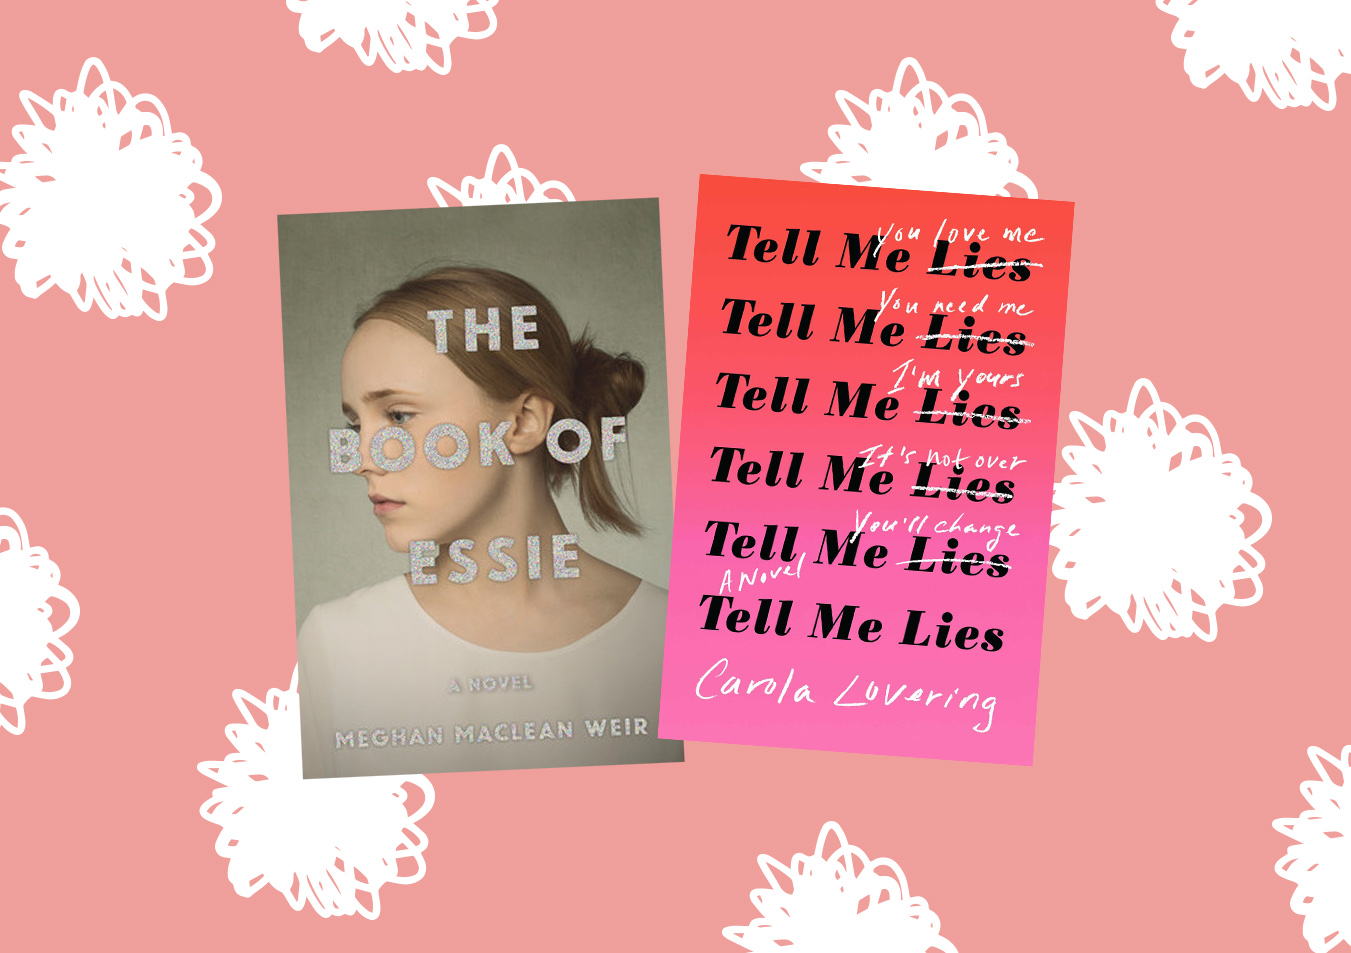 Picture of Books Coming Out This Week The Book of Essie Tell Me Lies Books